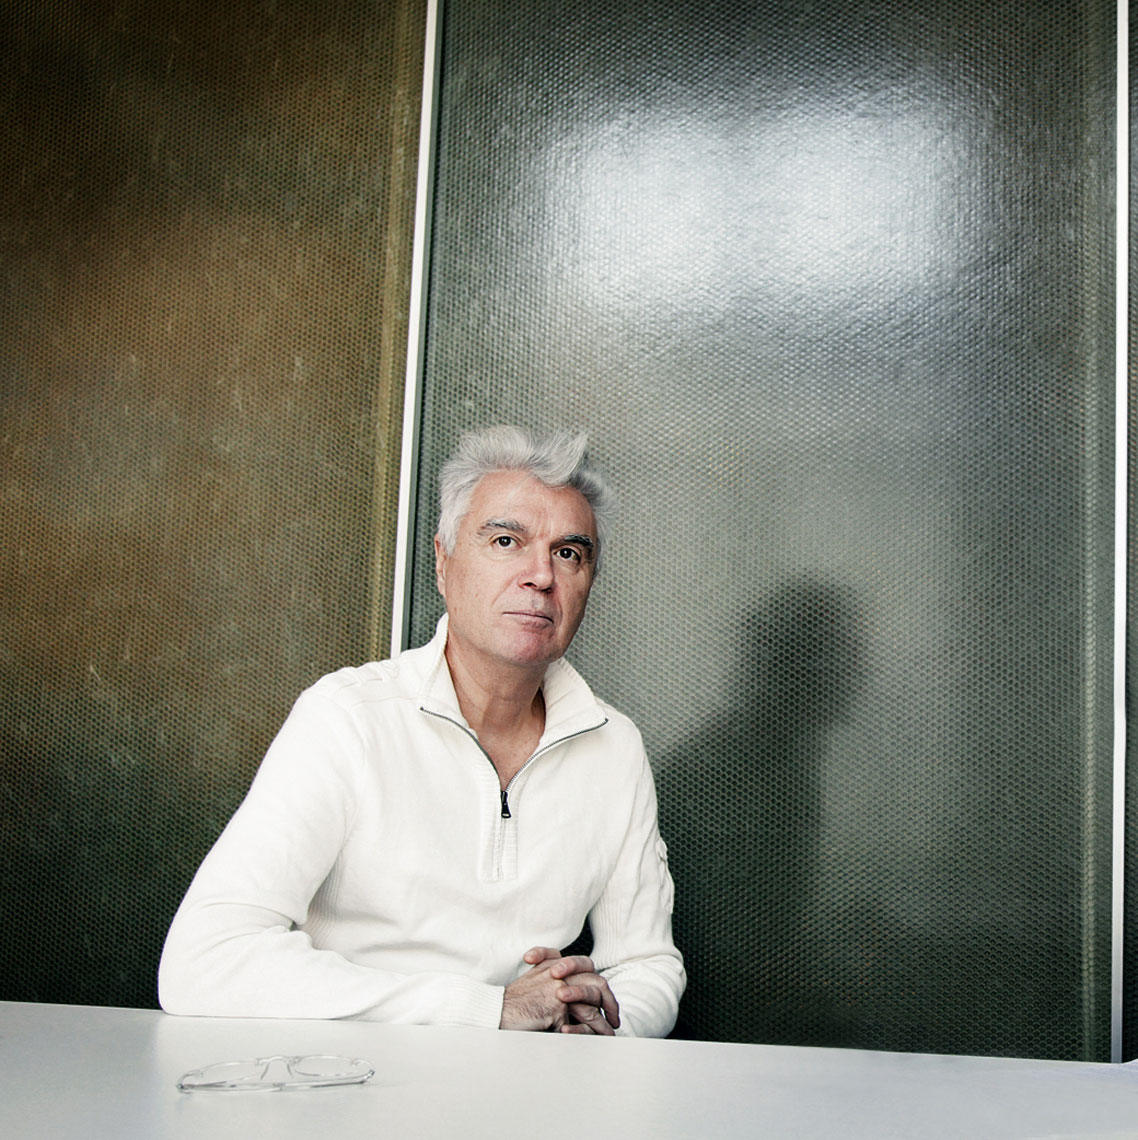 David Byrne by PETER LueDERS